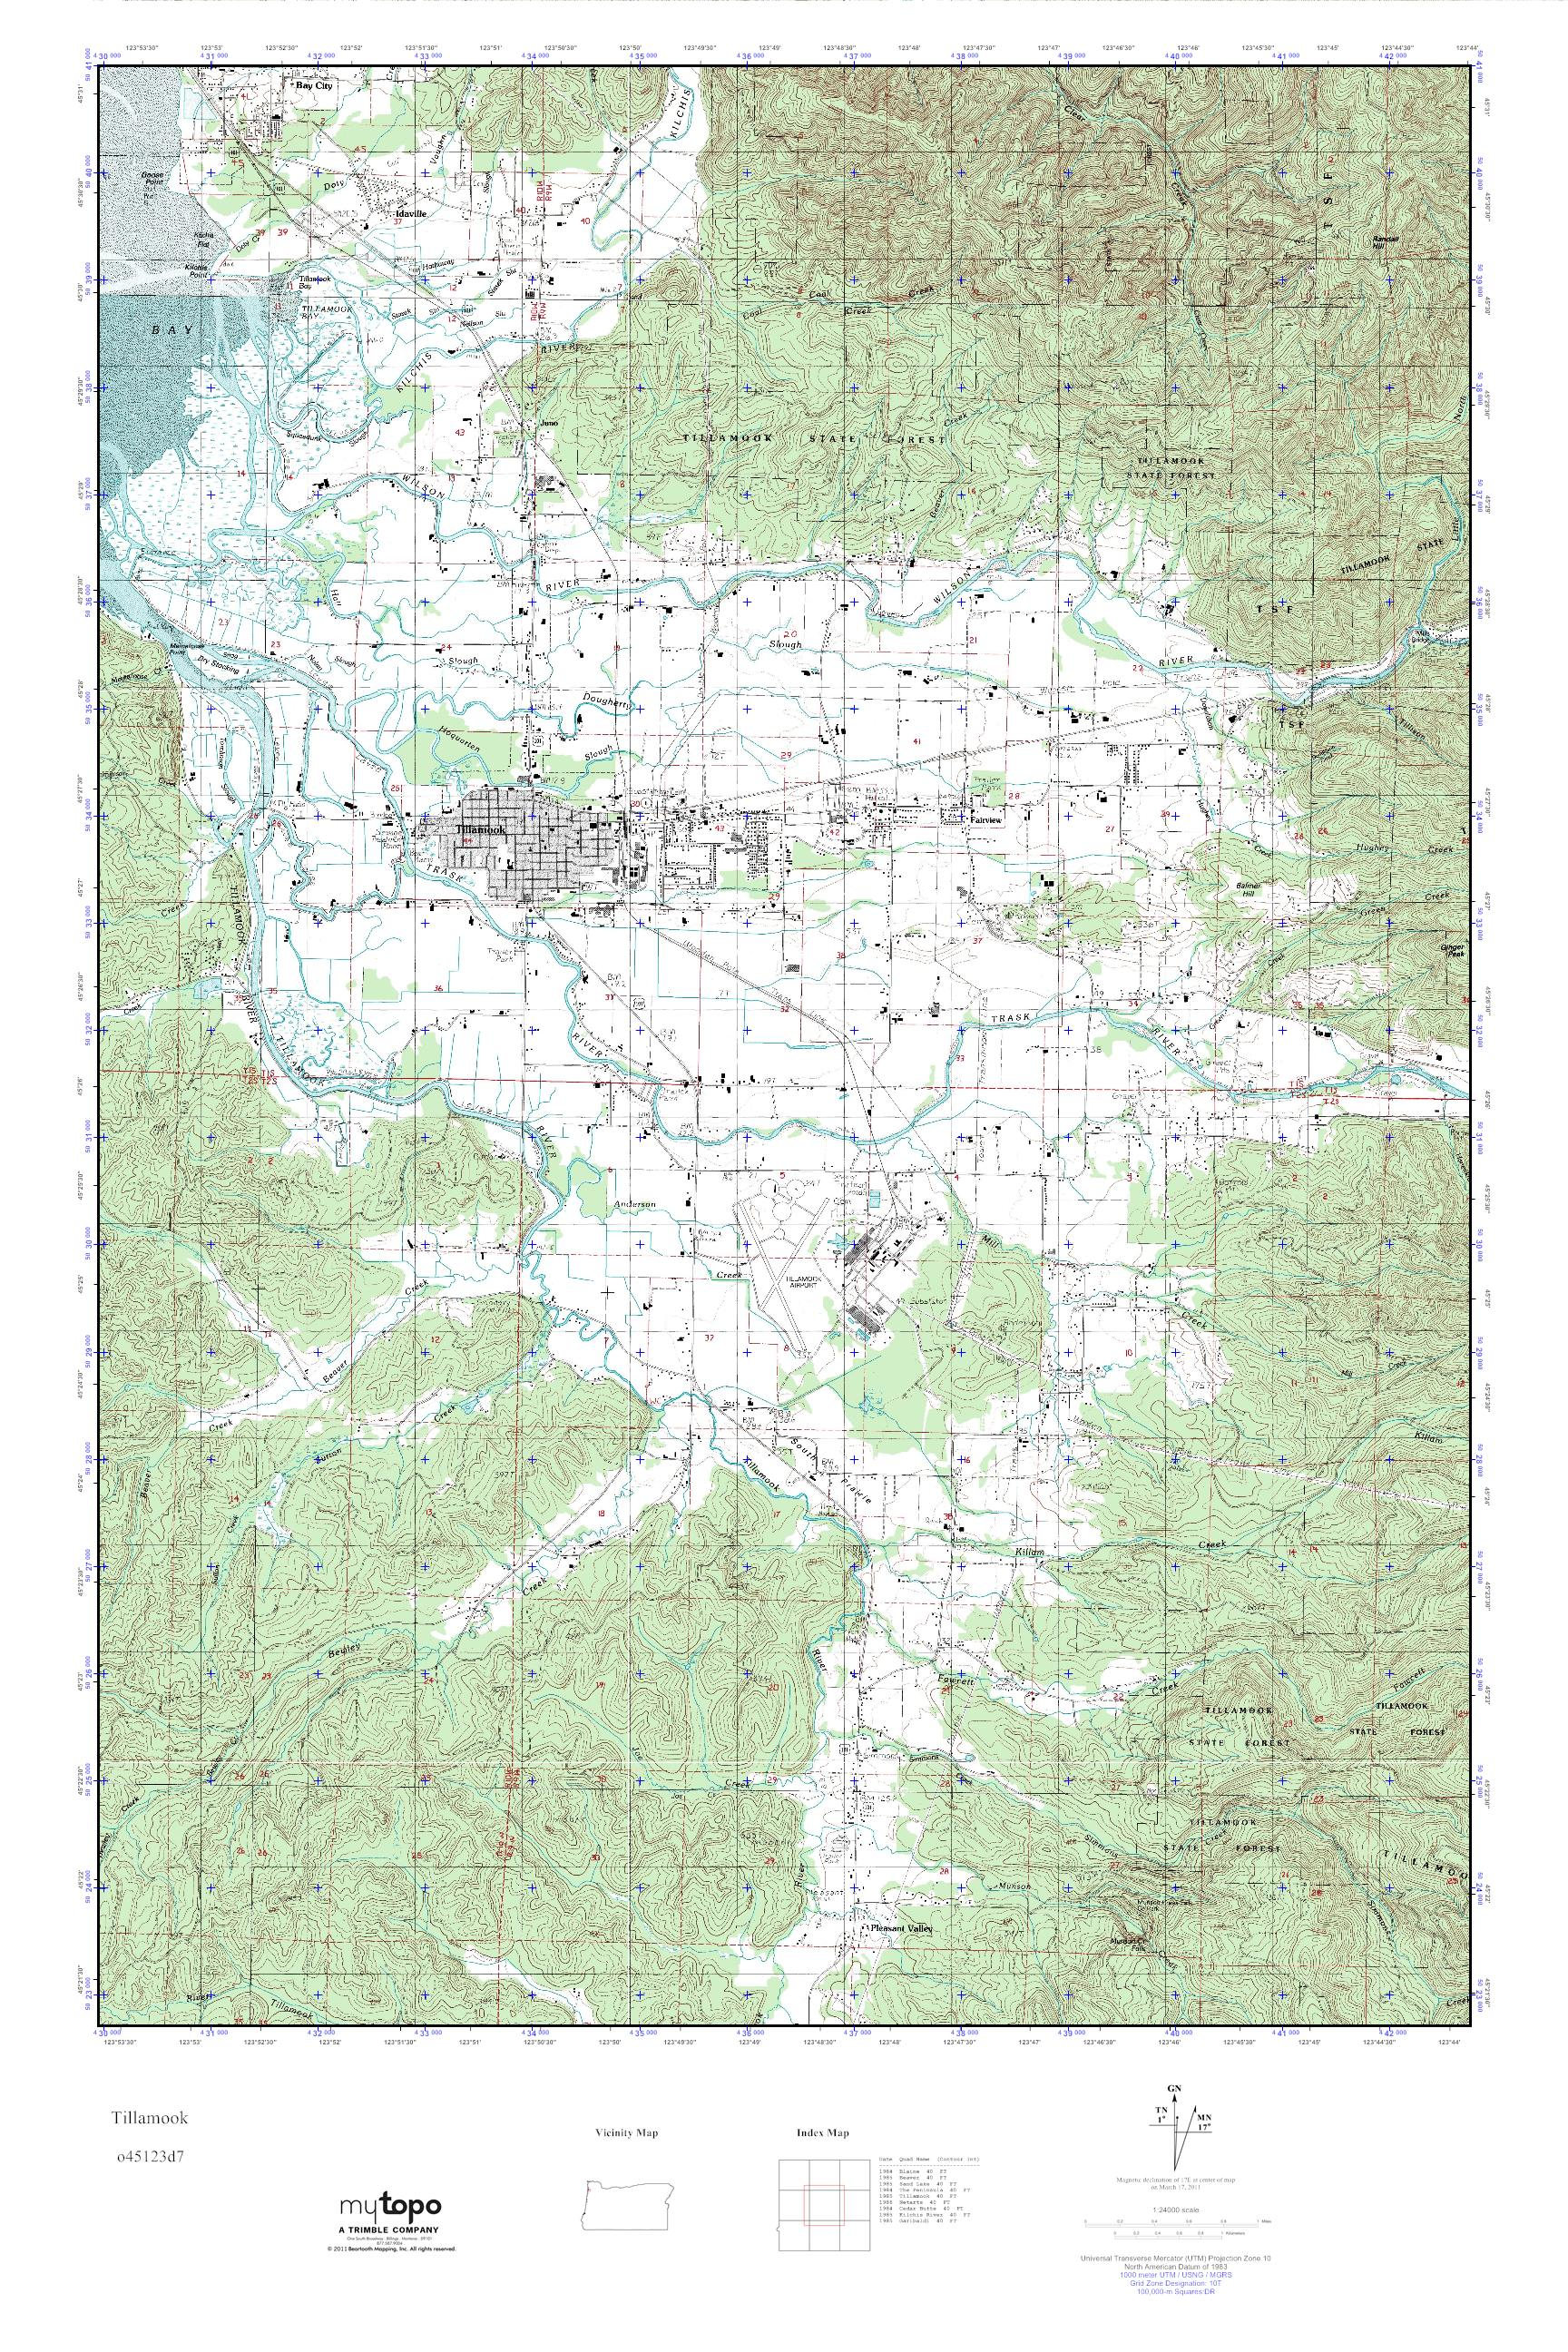 Mytopo Tillamook Oregon Usgs Quad Topo Map